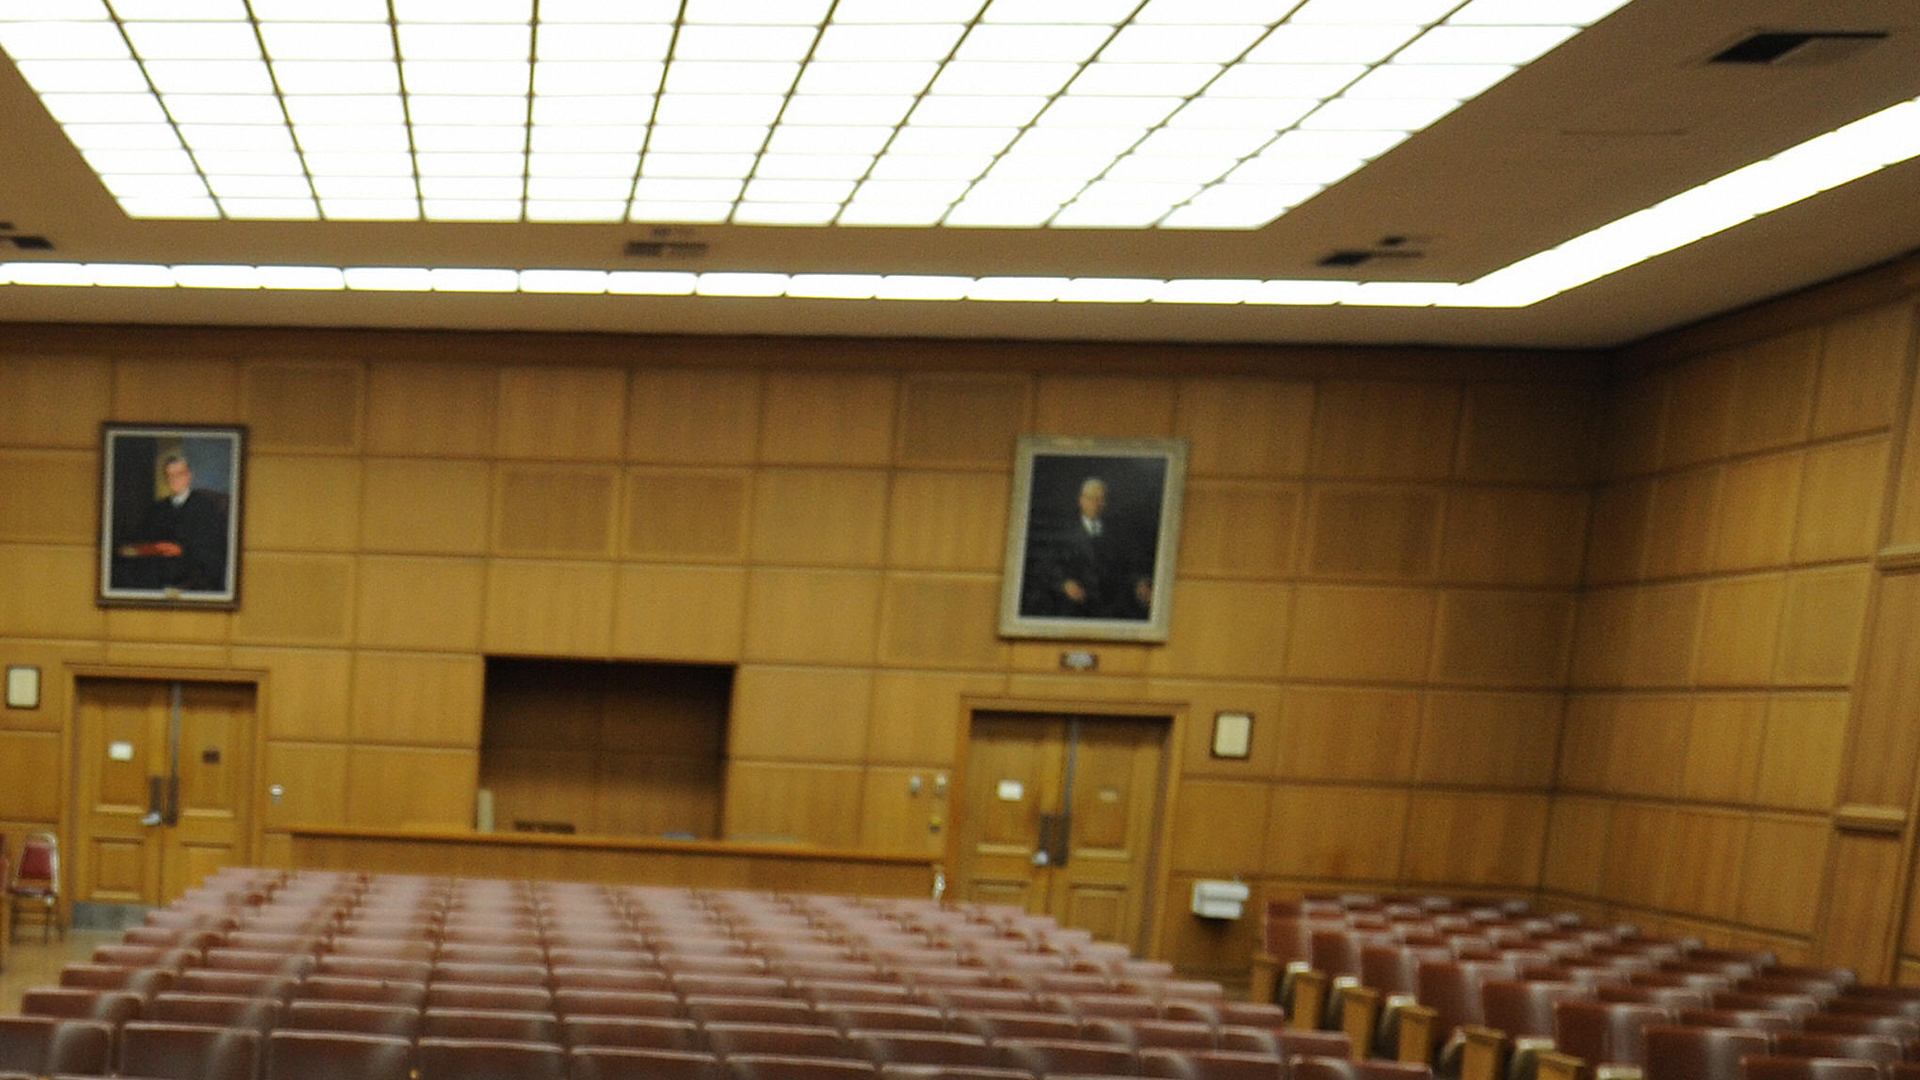 A courtroom at Los Angeles Superior Court is seen in Los Angeles, on July 15, 2009. (Credit: MARK RALSTON/AFP/Getty Images)